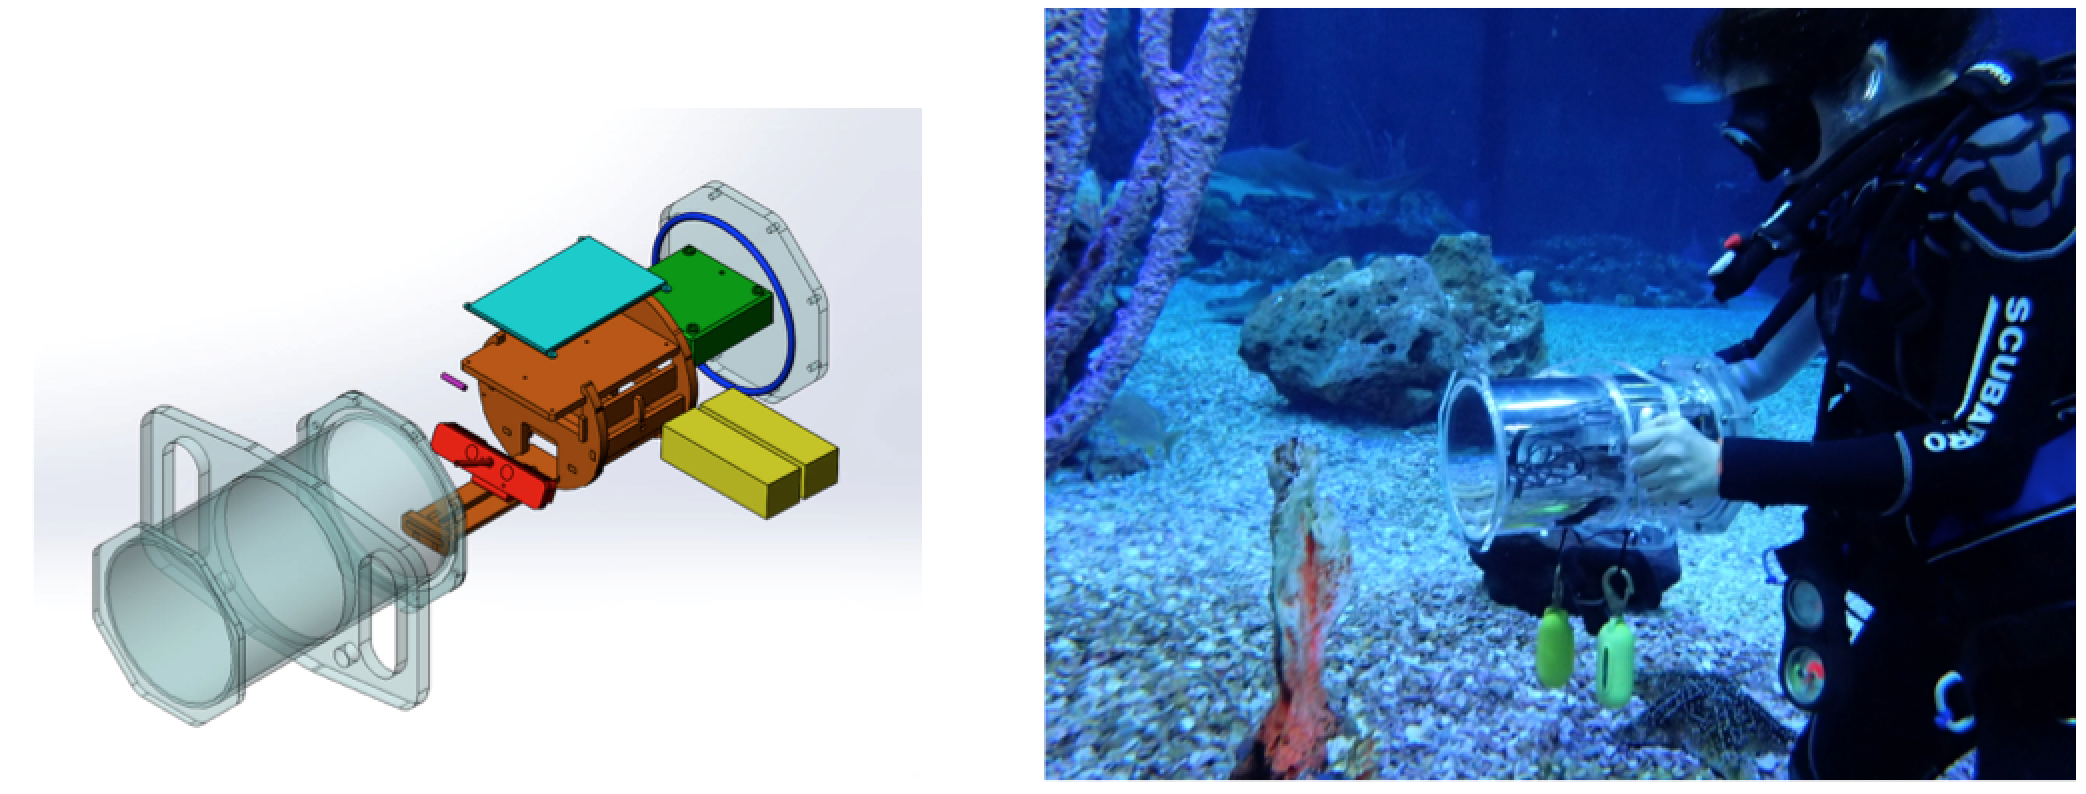 Underwater 3D Capture using a Low-Cost Commercial Depth Camera-Image